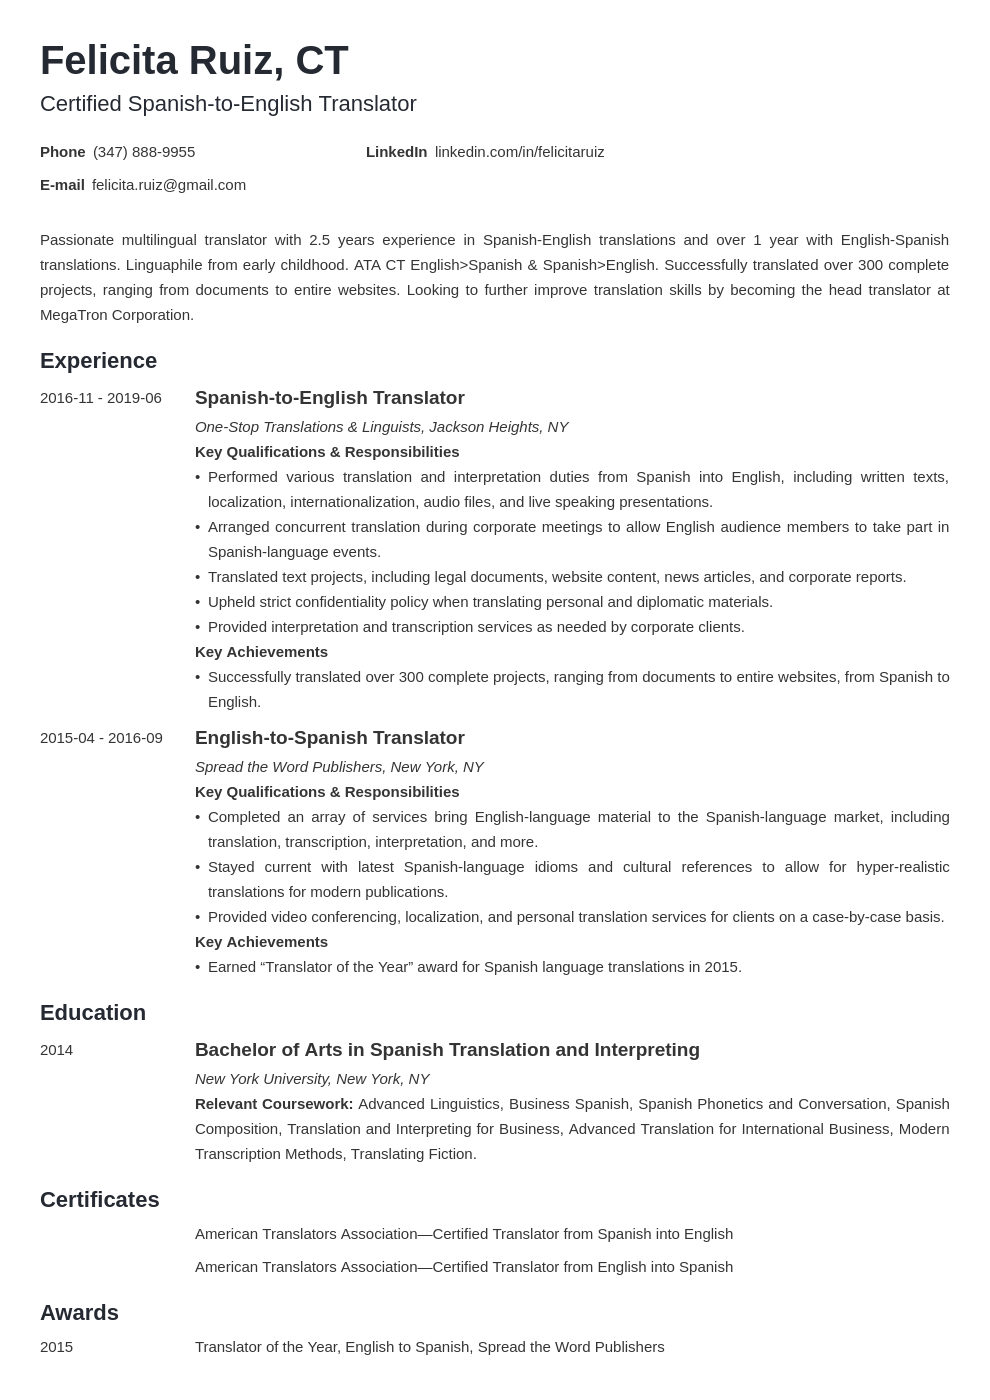 Translator Resume Sample with Skills (Template & Guide)